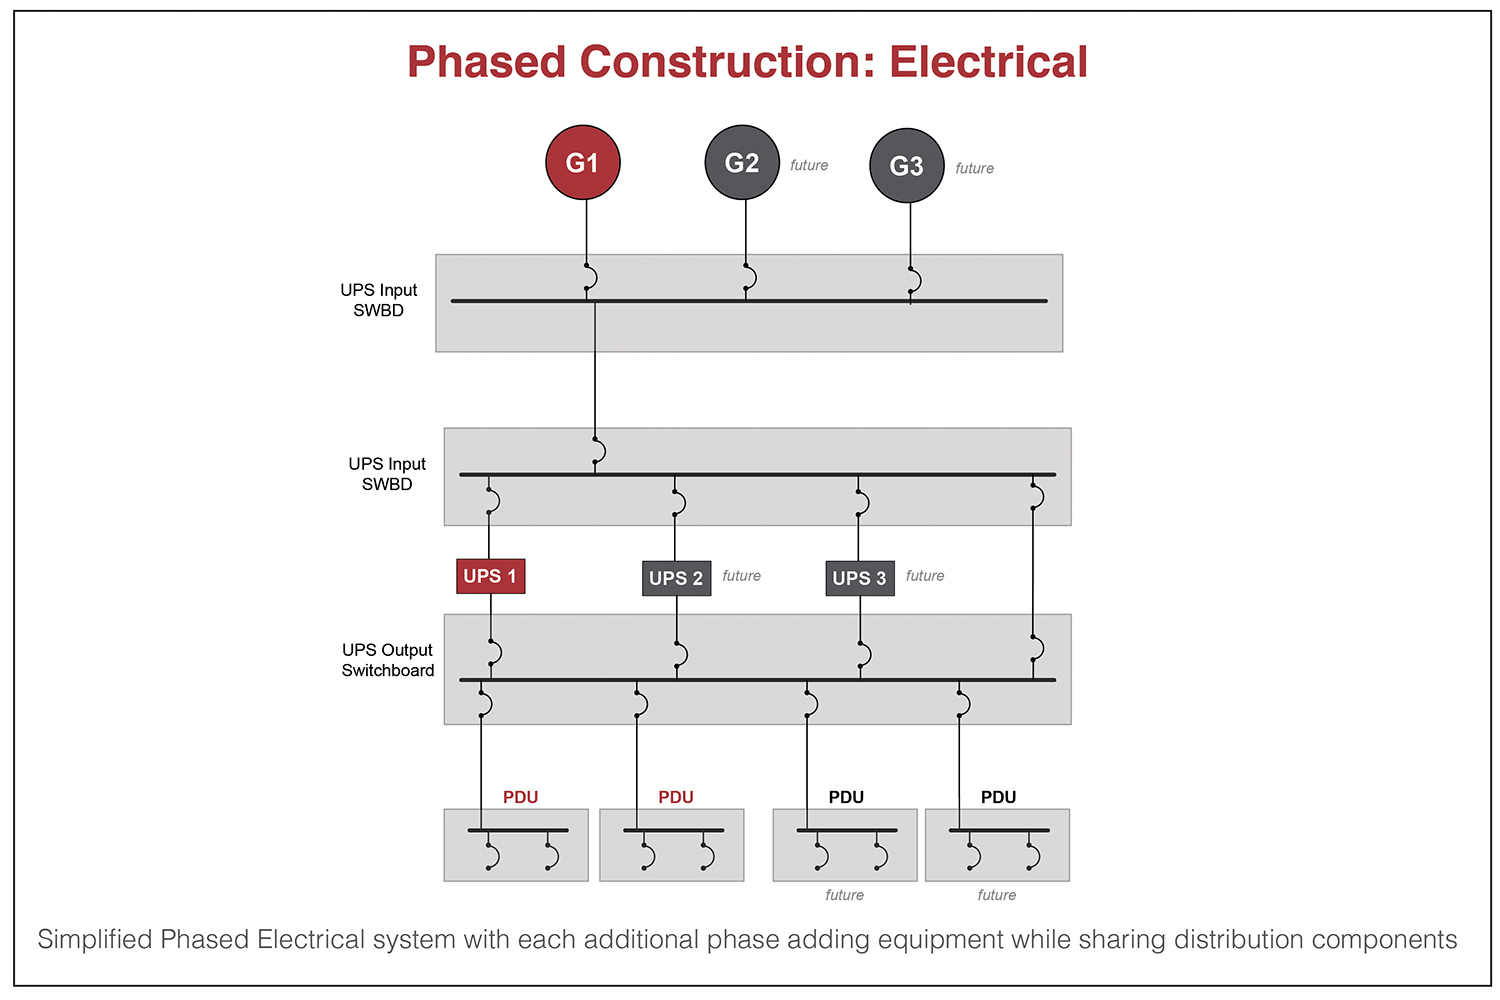 Figure 5. Simplified phased electrical system with each additional phase adding equipment while sharing distribution components